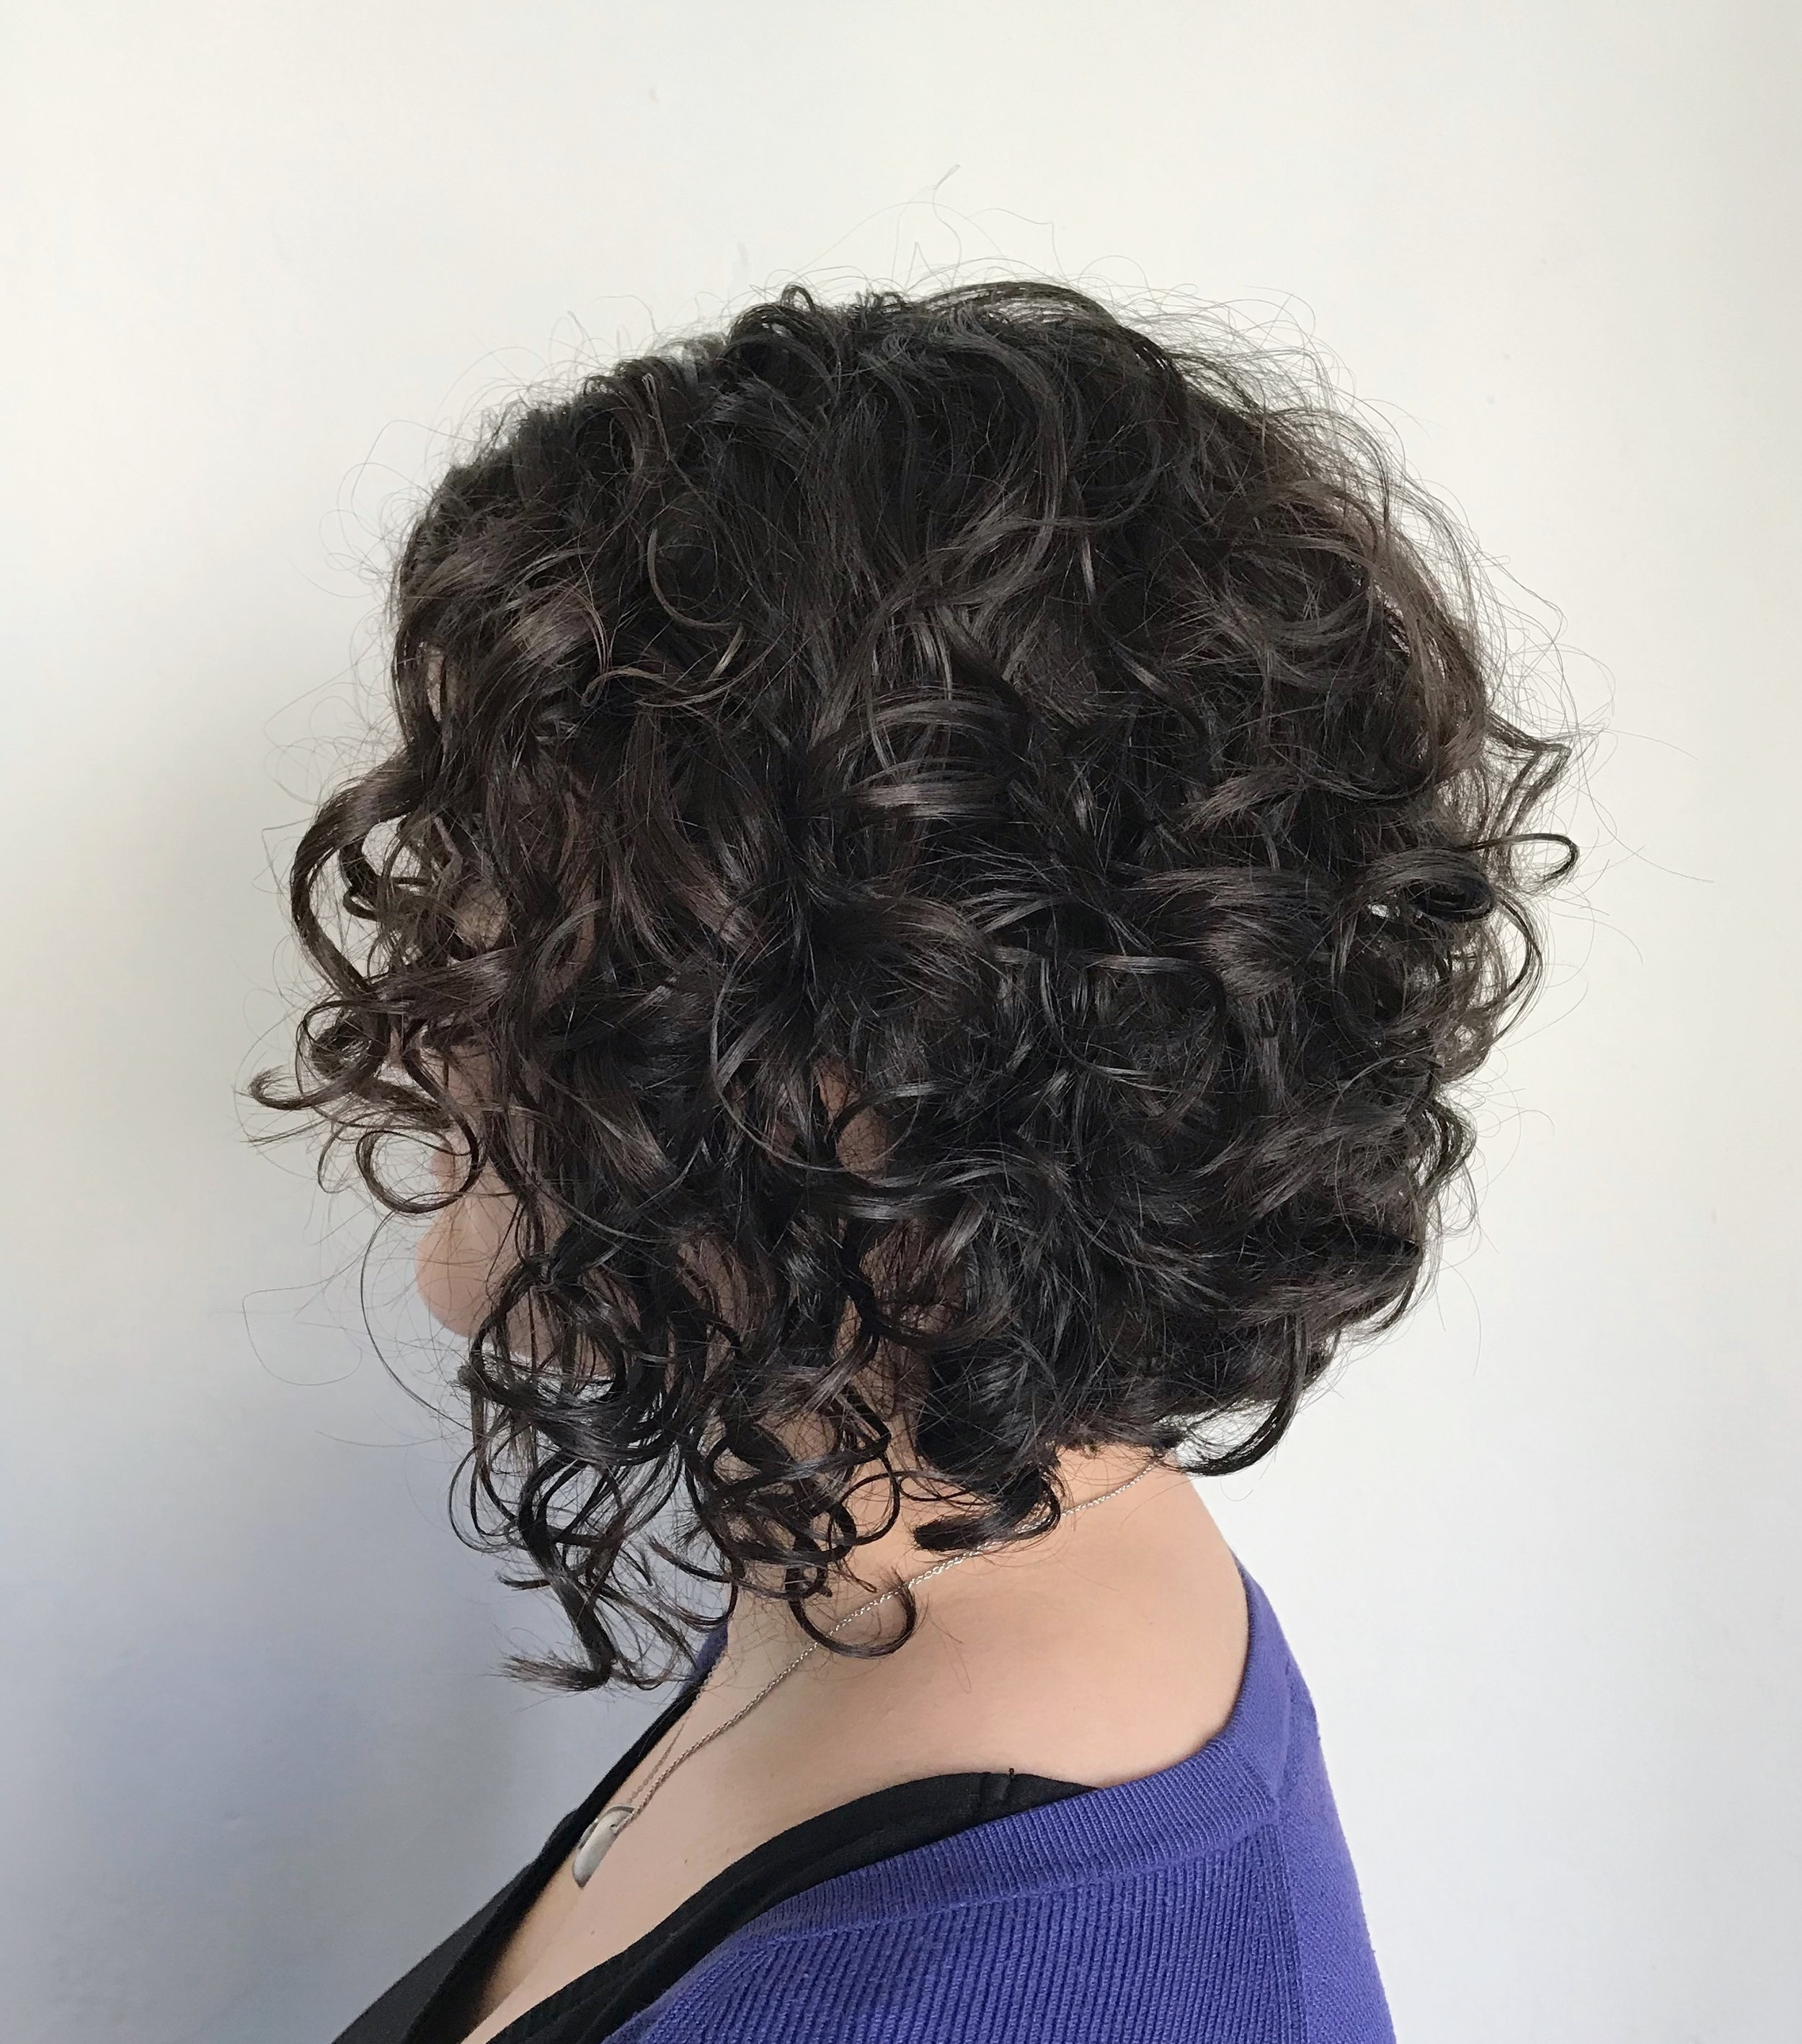 CurlyHair - 7.jpg